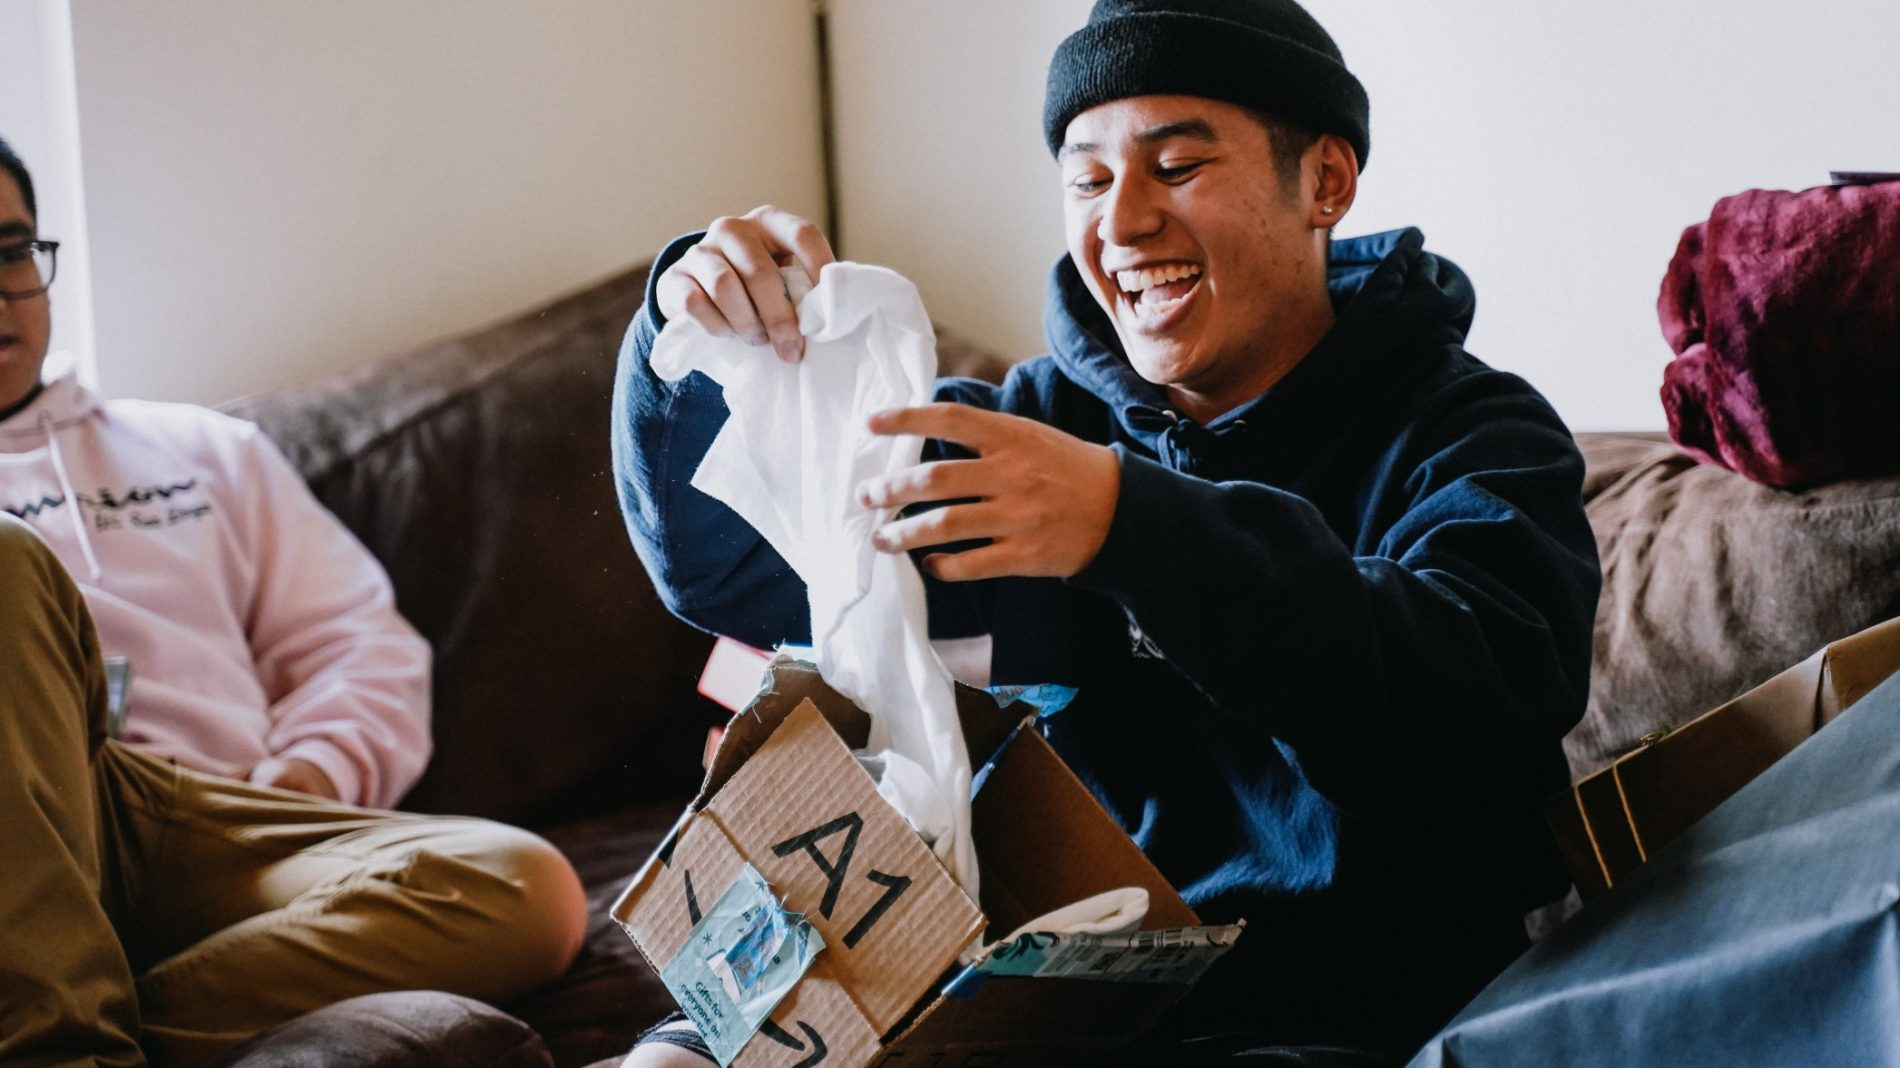 Photo of a person smiling while opening a present